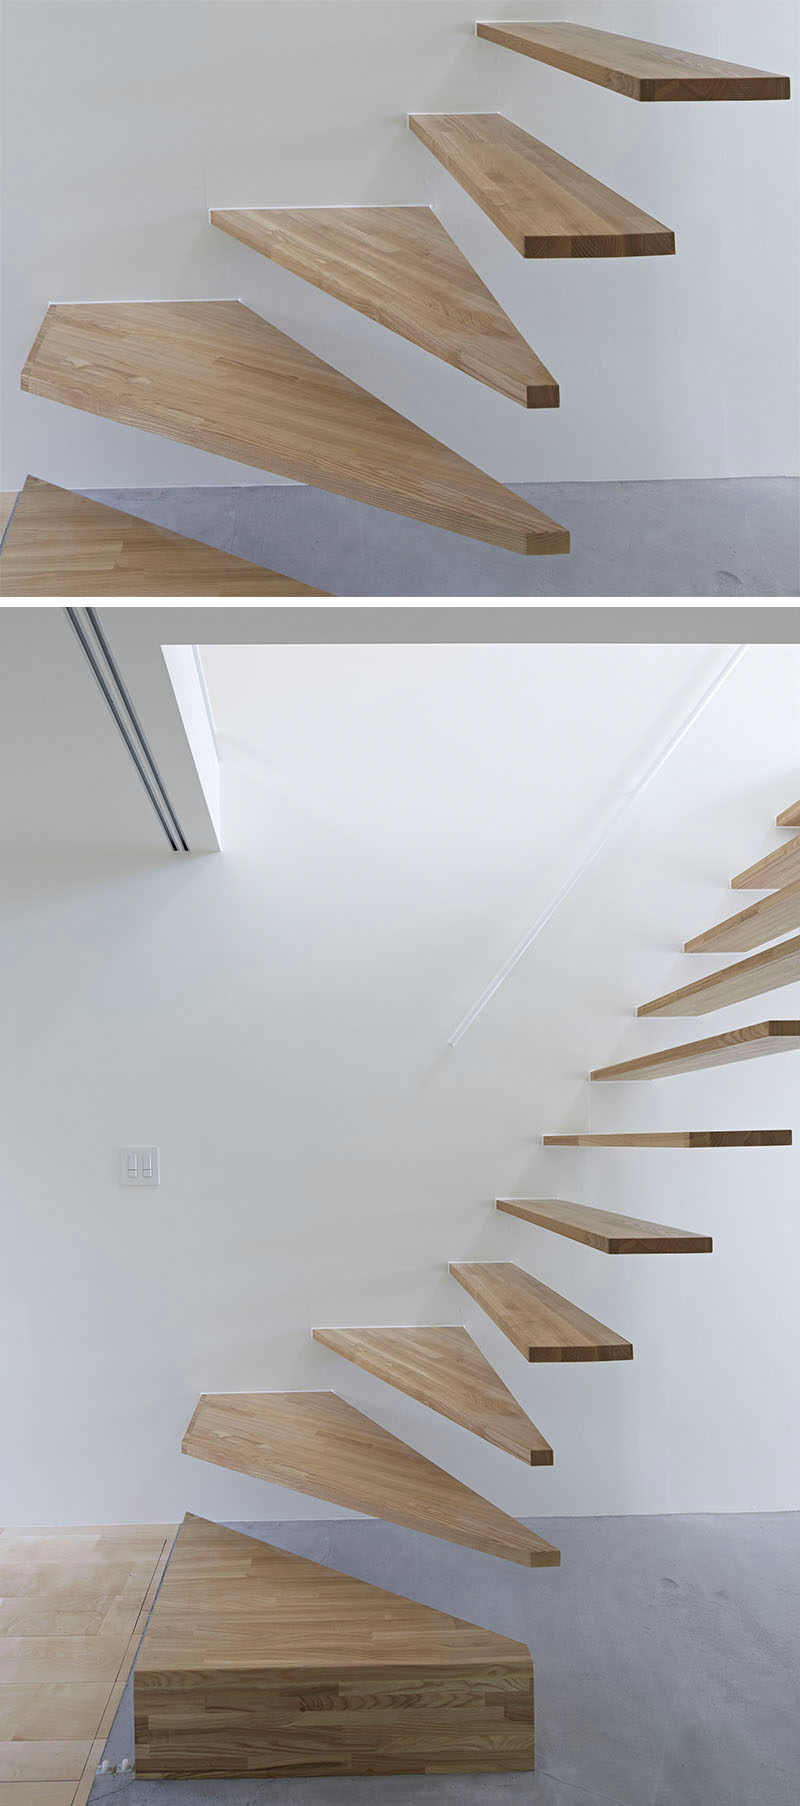 18 Examples Of Stair Details To Inspire You // These light wood floating stairs break up the white walls and concrete floor.